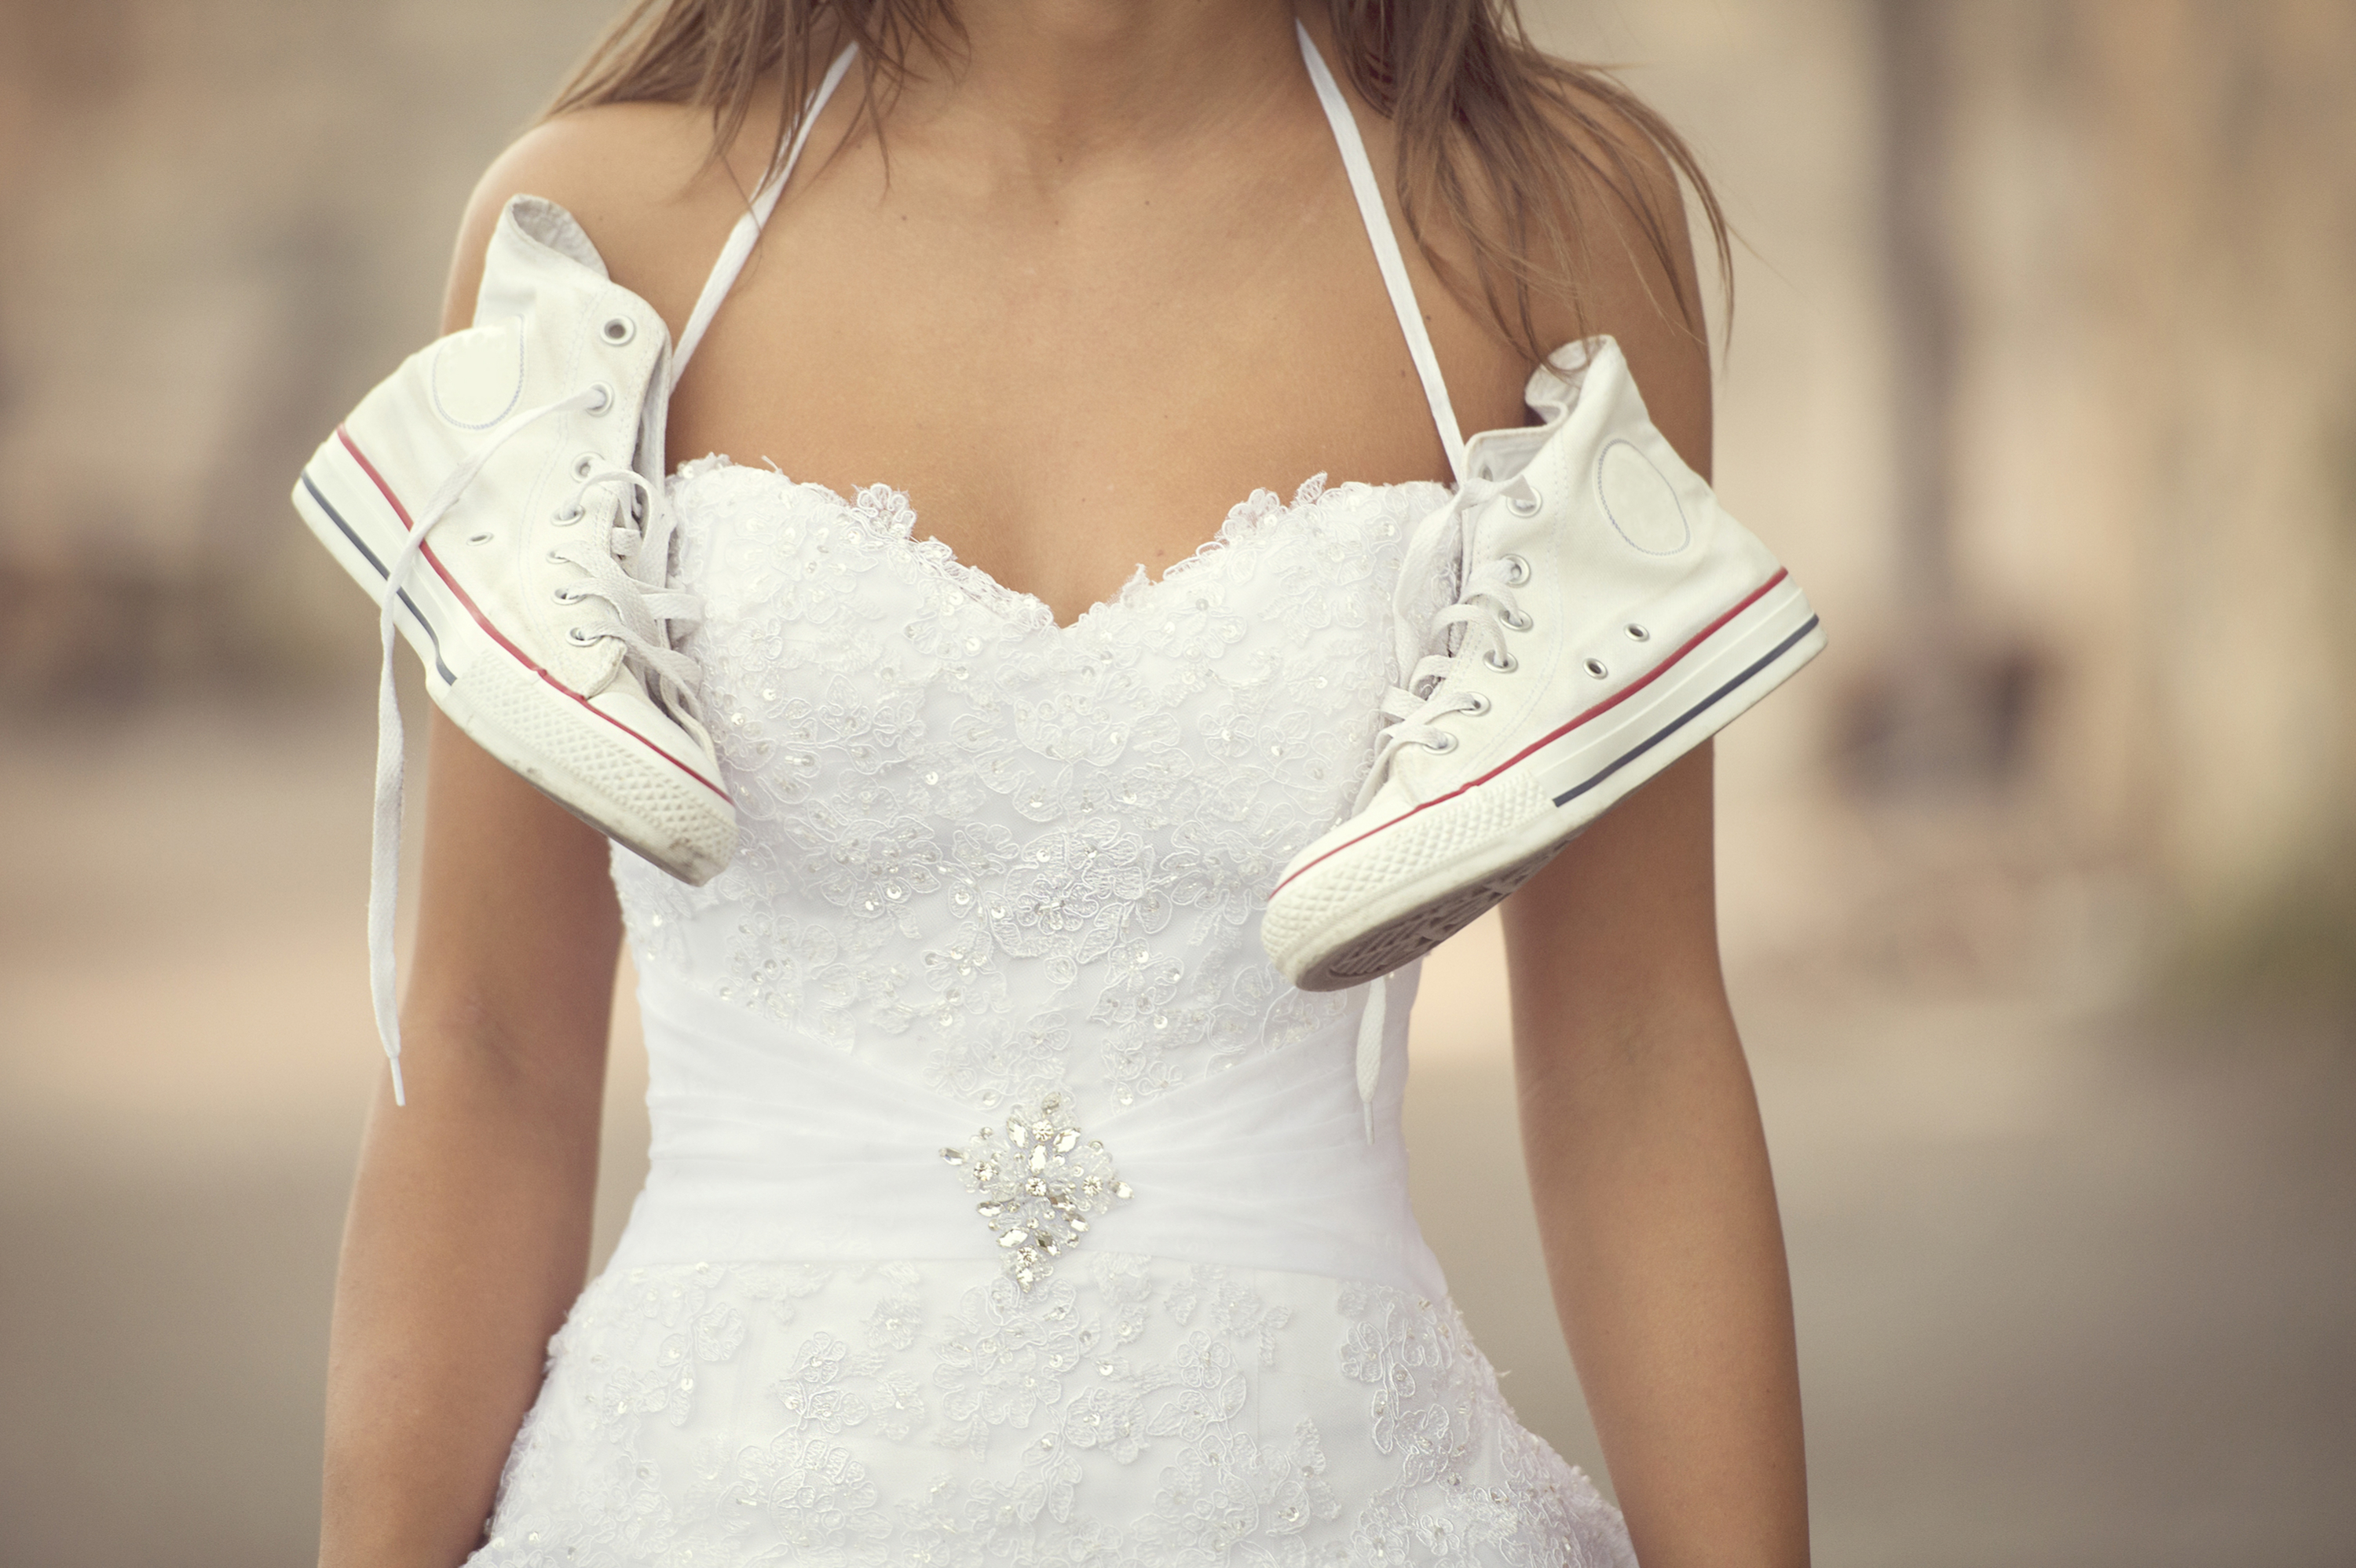 shoes   wedding shoes   high heels   sneakers   converse   sandals   flip flops   boots   wedding   bridal shoes   shoes for the bride   fashion